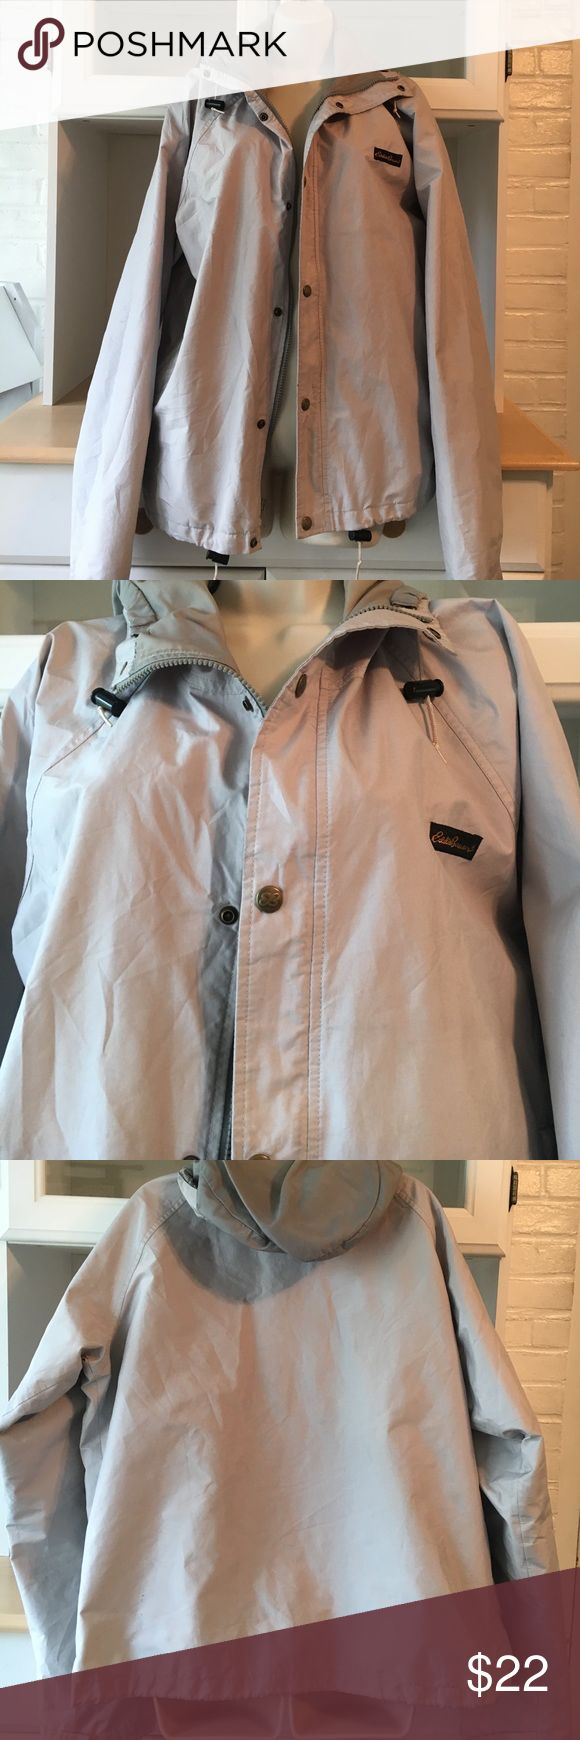 Eddie Bauer tan rain jacket Eddie Bauer, Expedition Outfitter, Rain jacket with hood. Two pockets on the outside, one on the inside. Machine washable, Gore.Tex fabric, great condition. Eddie Bauer Jackets & Coats Raincoats